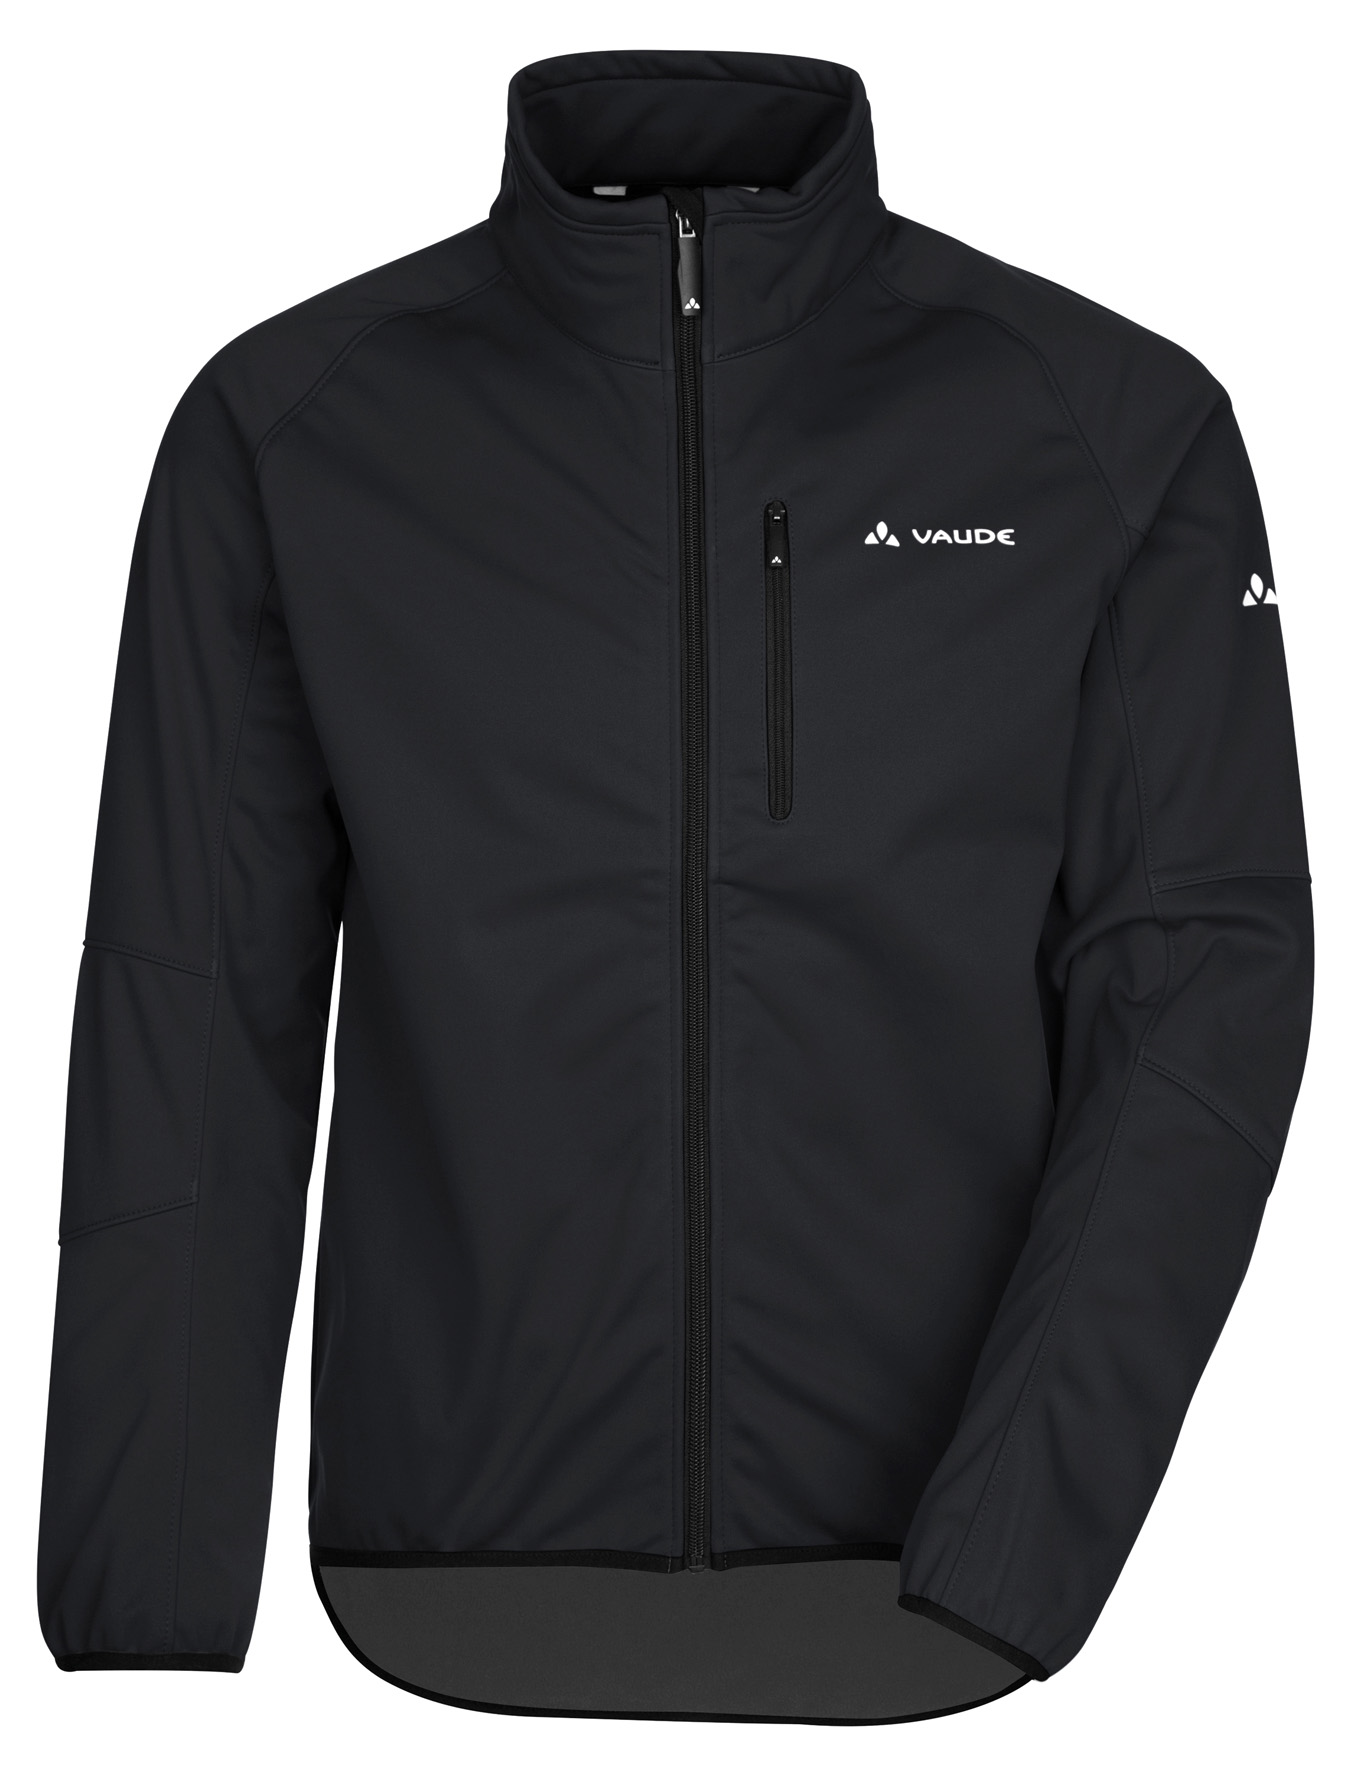 VAUDE Men´s Spectra Softshell Jacket black Größe XXXL - VAUDE Men´s Spectra Softshell Jacket black Größe XXXL